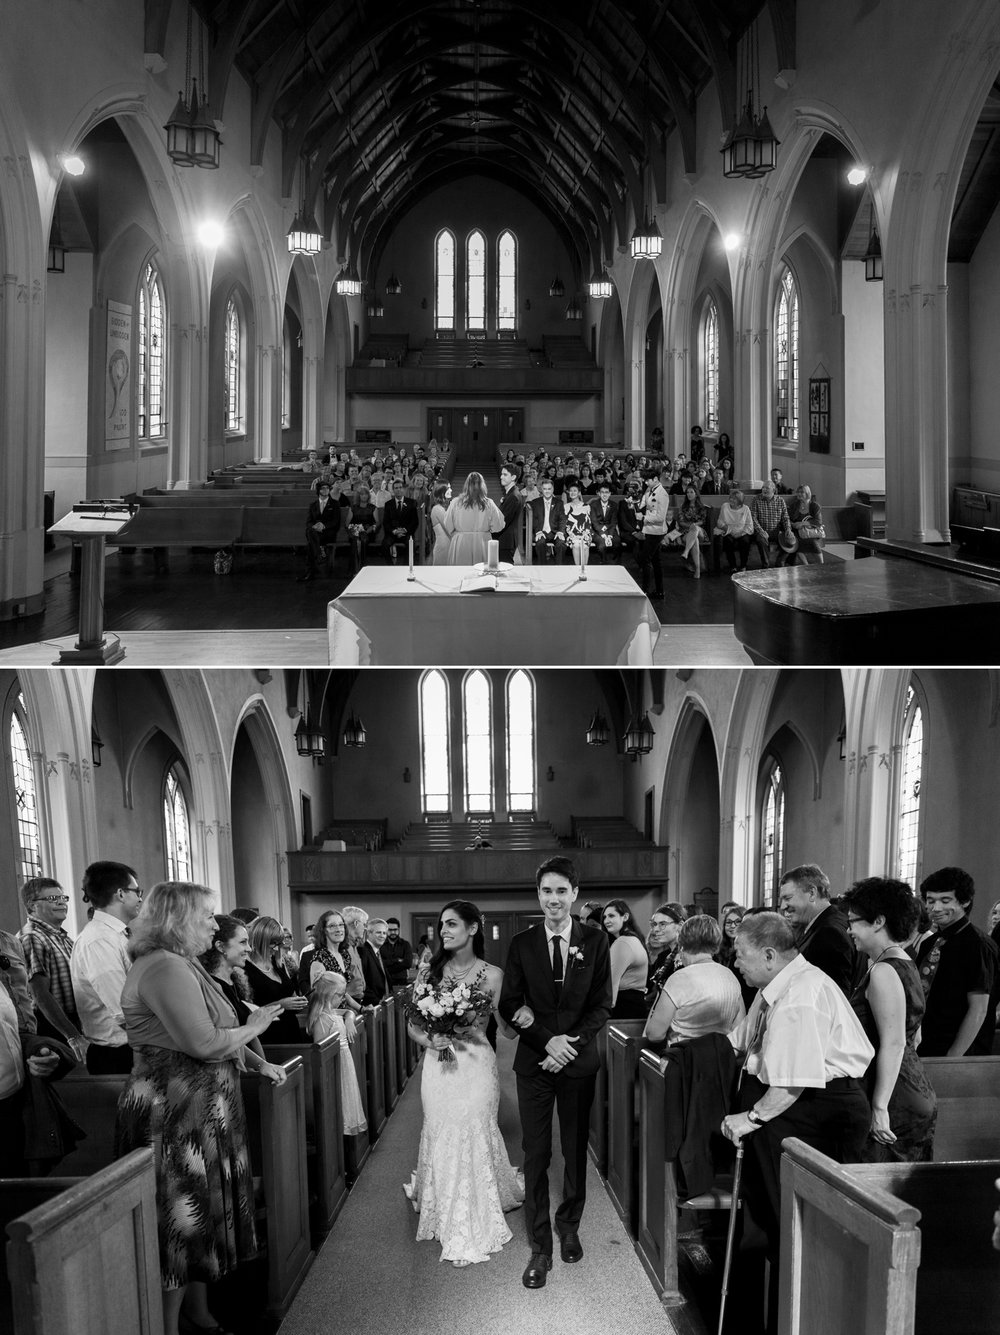 Wedding photographs from South Minster Church